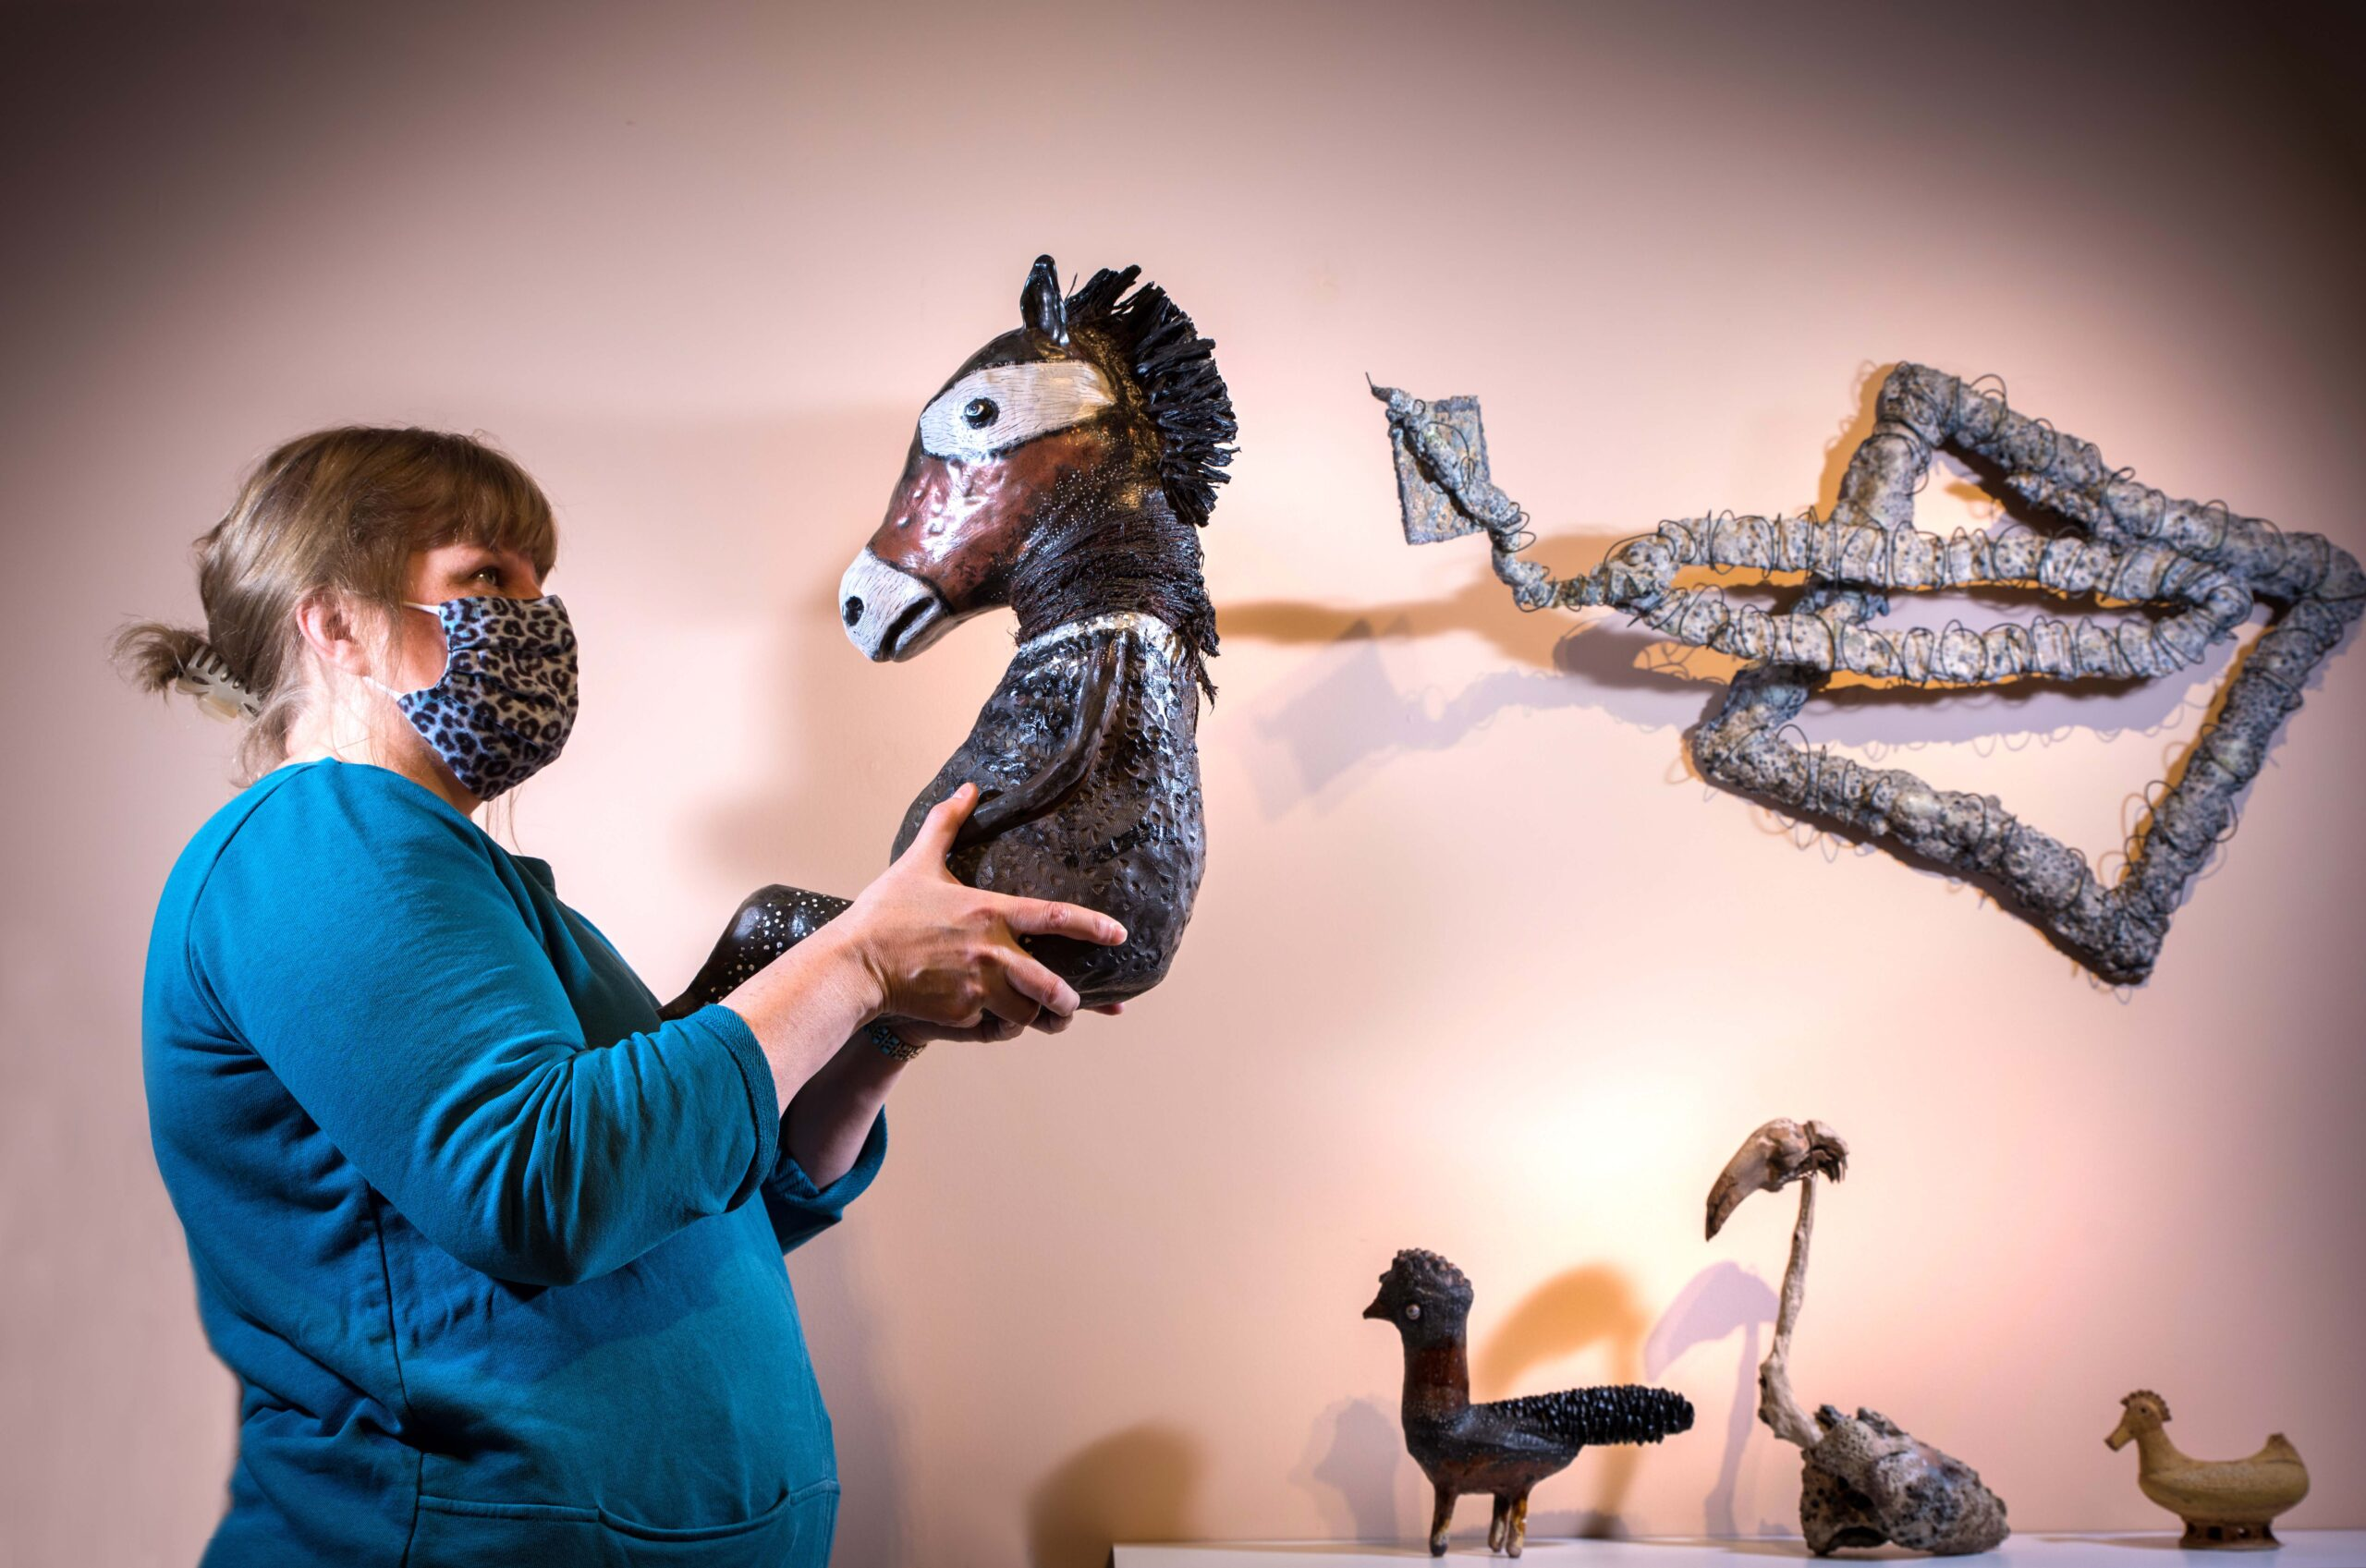 Curator holds an artwork shaped like a horses head. On the right parts of other sculptures can be seen on the wall and bird shaped sculptures on the bottom right